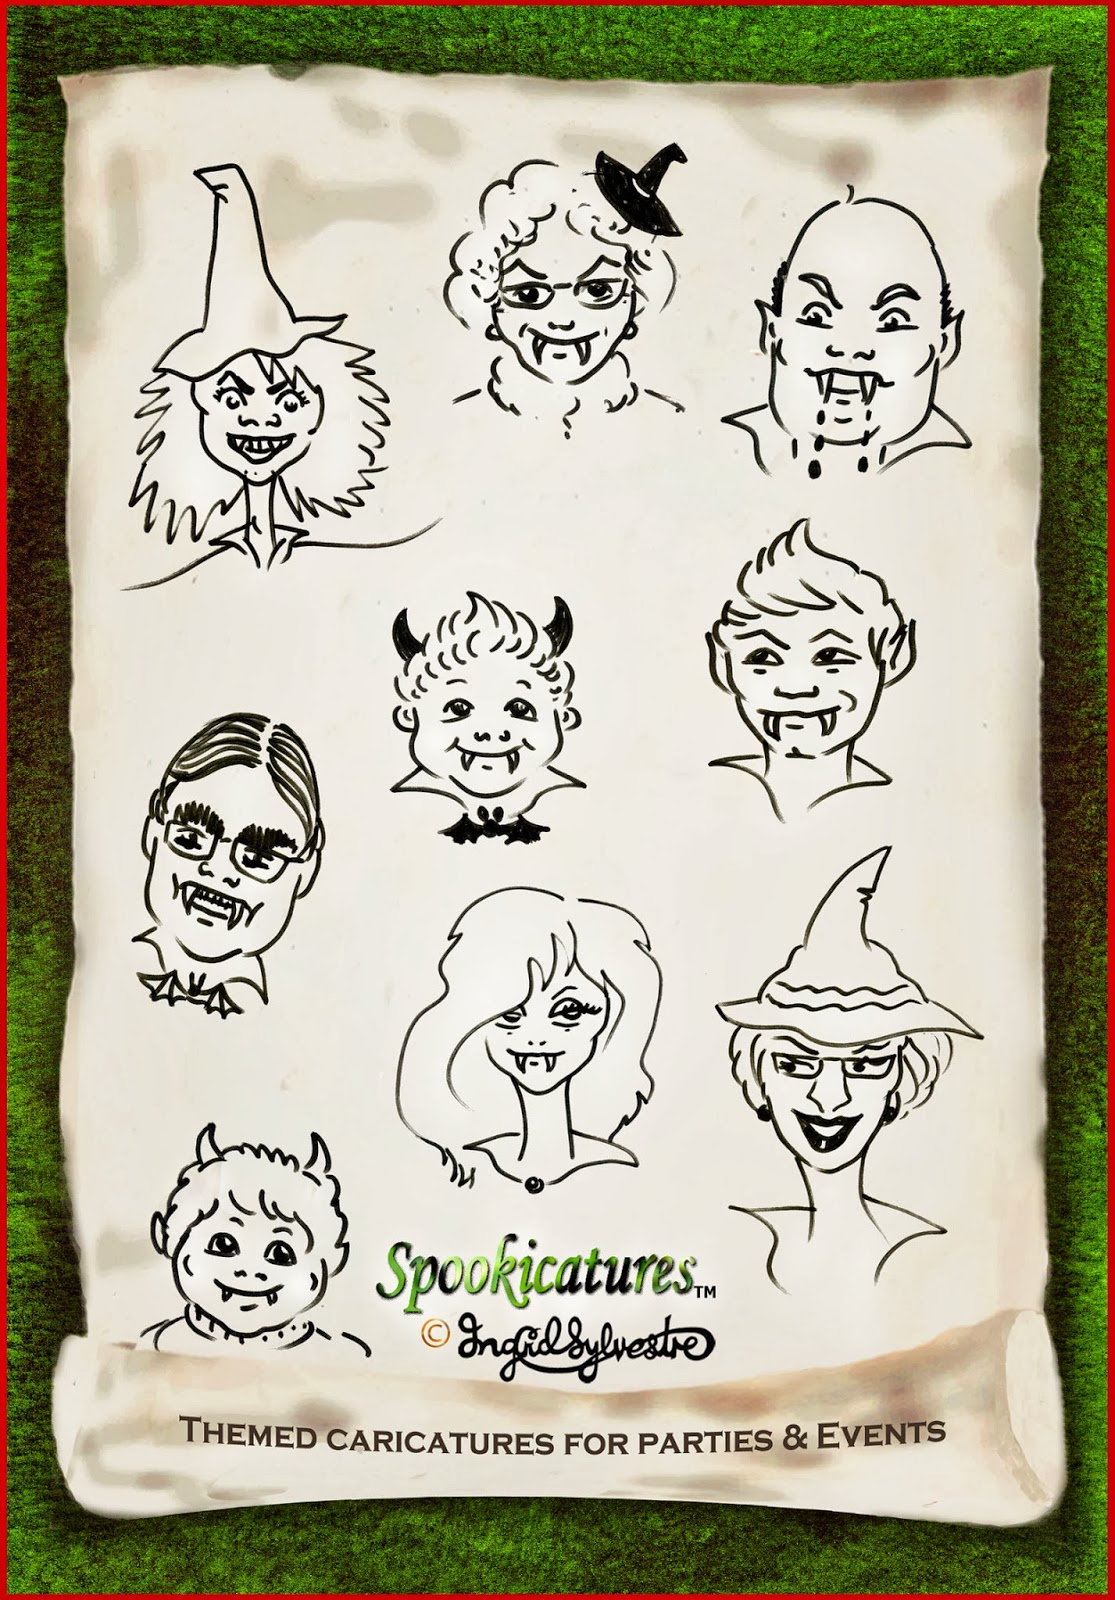 Spookicatures-TM - themed caricatures for Hallowe'en - Ingrid Sylvestre North East UK caricaturist